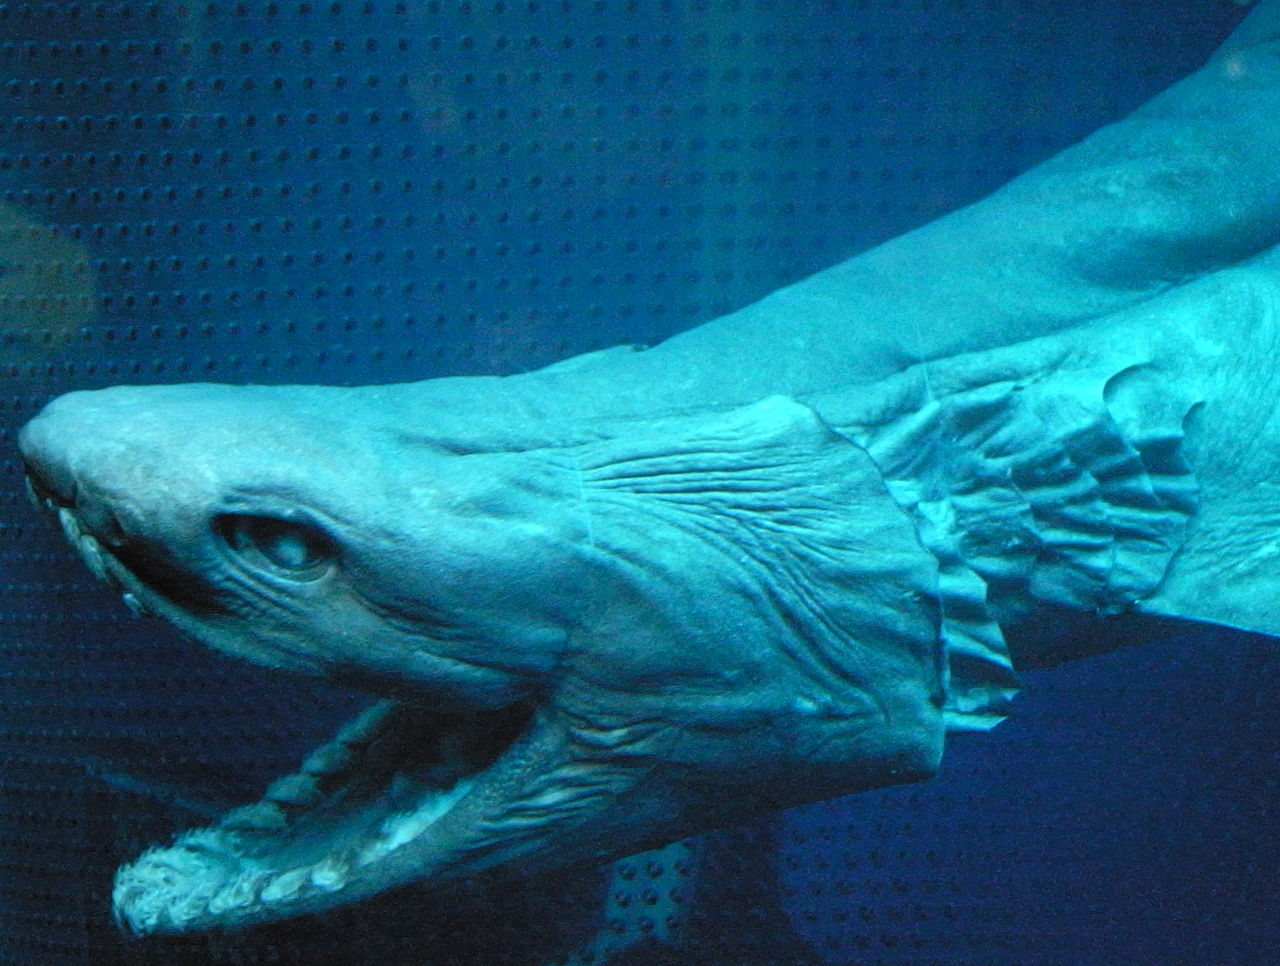 Scary frilled shark wallpaper